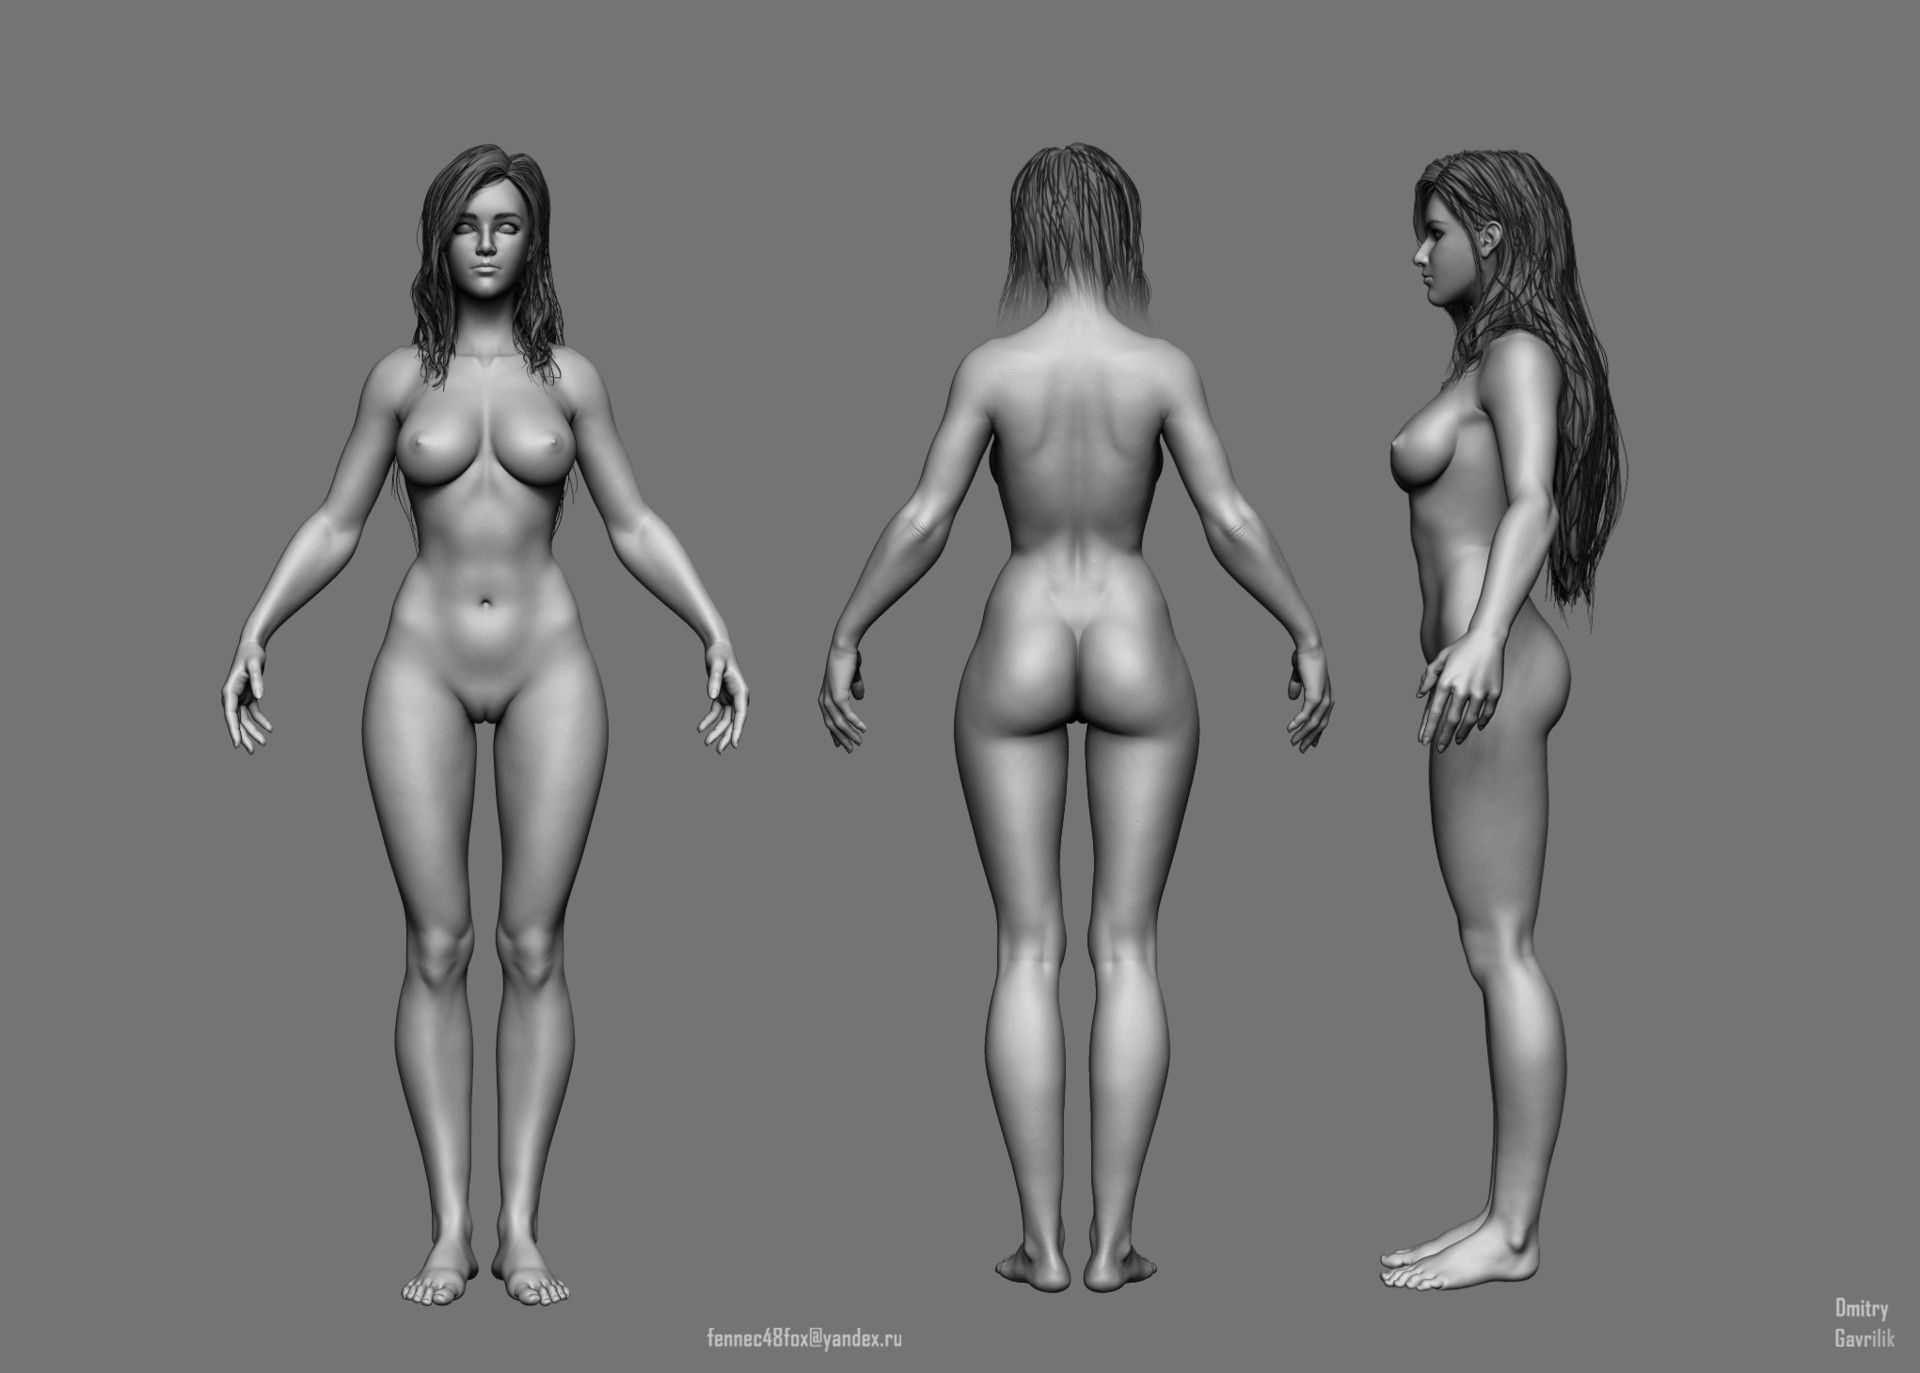 ArtStation - Female Anatomy Study, Dmitry Gavrilik | Woman Body ...